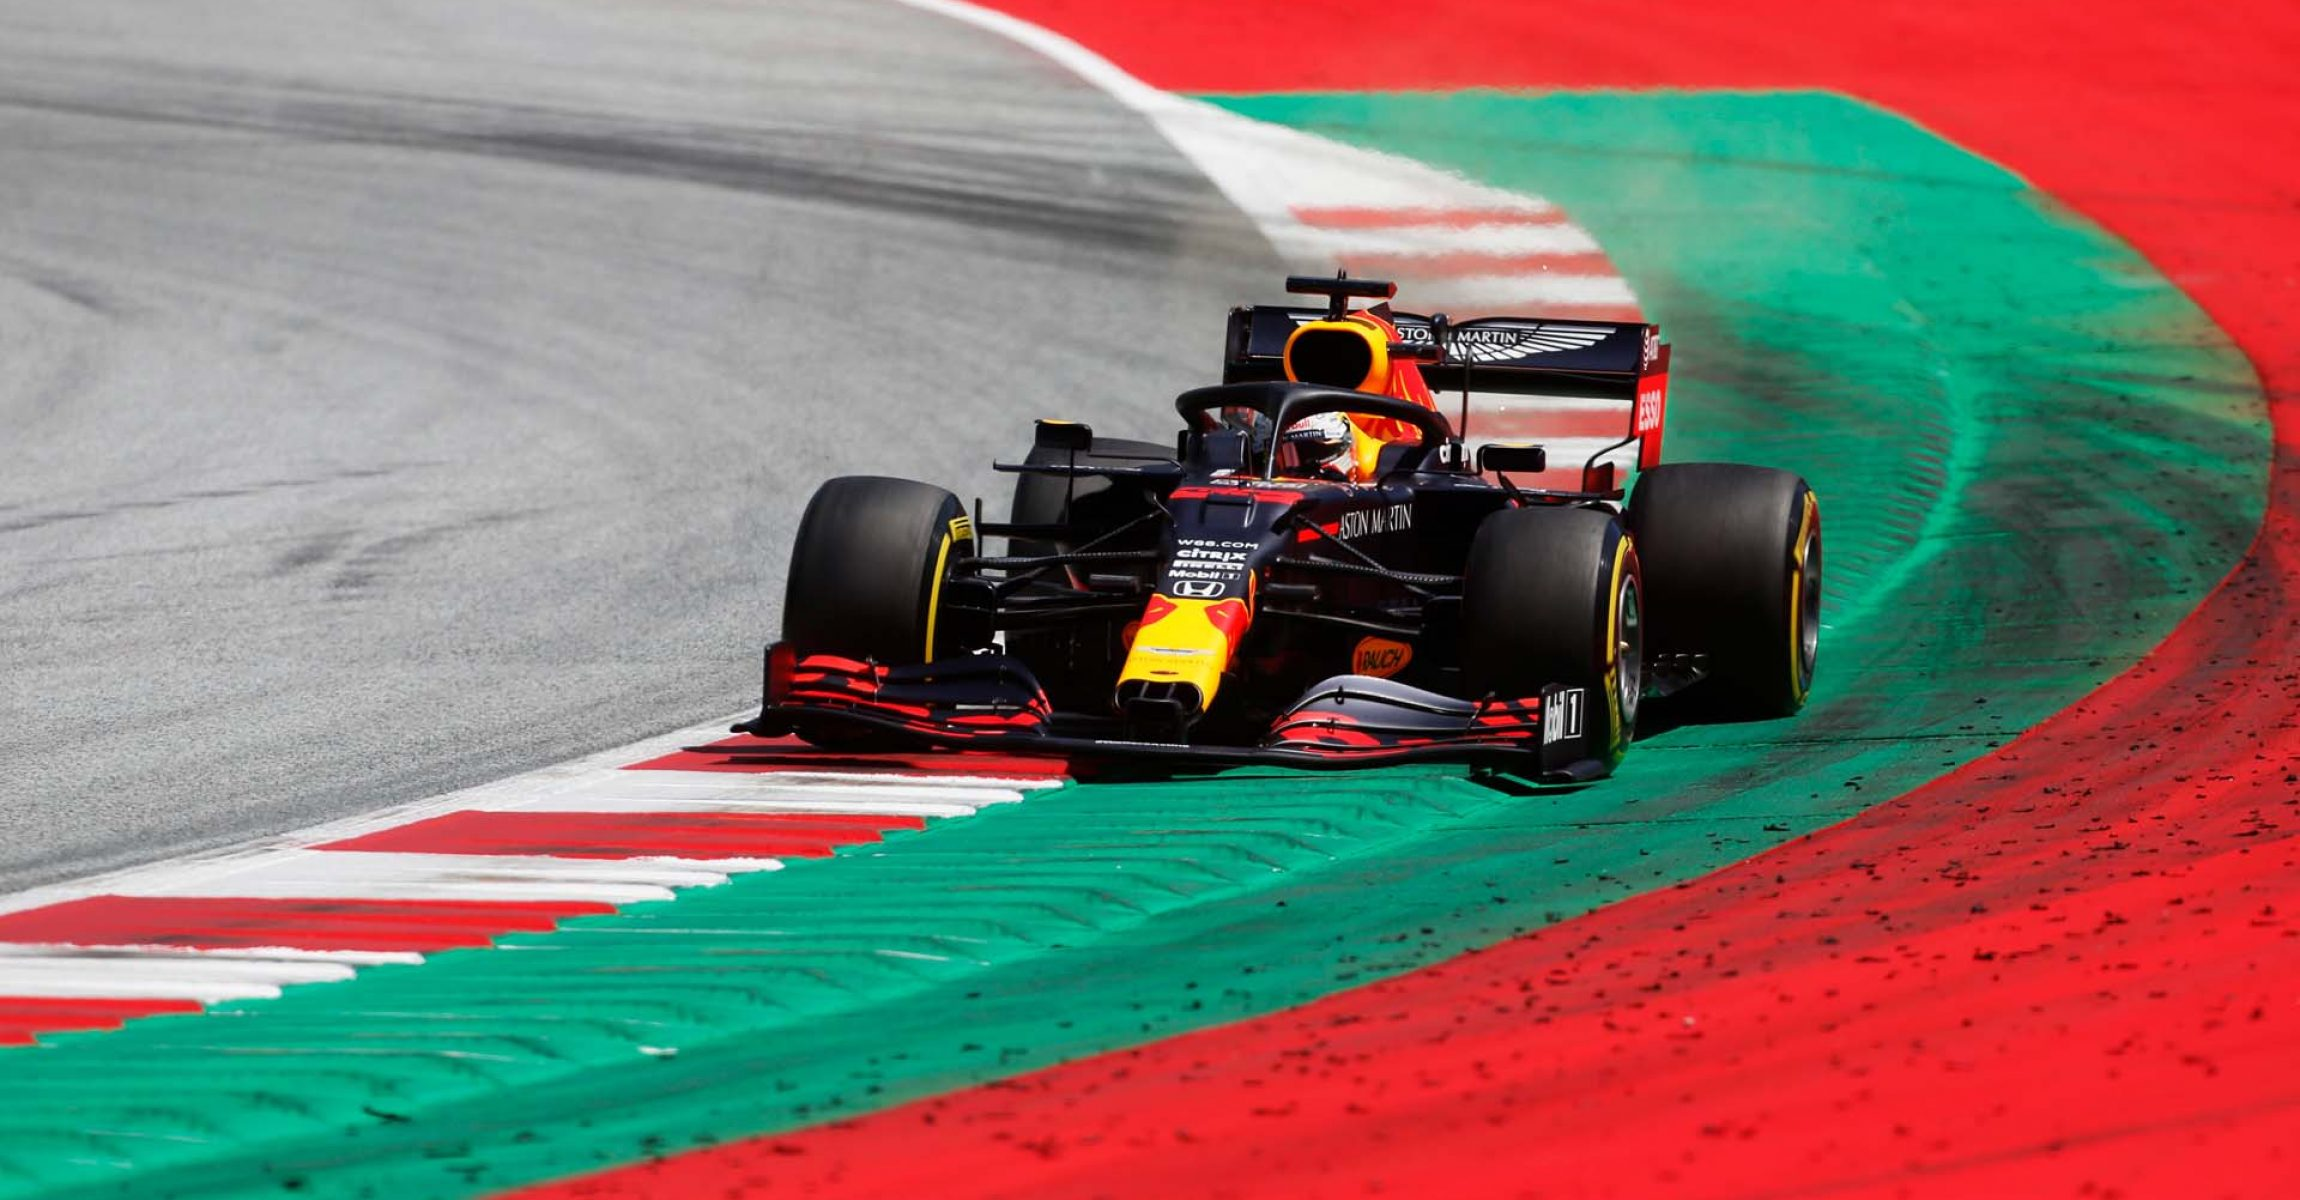 SPIELBERG, AUSTRIA - JULY 04: Max Verstappen of the Netherlands driving the (33) Aston Martin Red Bull Racing RB16 on track during final practice for the Formula One Grand Prix of Austria at Red Bull Ring on July 04, 2020 in Spielberg, Austria. (Photo Darko Bandic/Pool via Getty Images) // Getty Images / Red Bull Content Pool // AP-24HB2FK6S2111 // Usage for editorial use only //